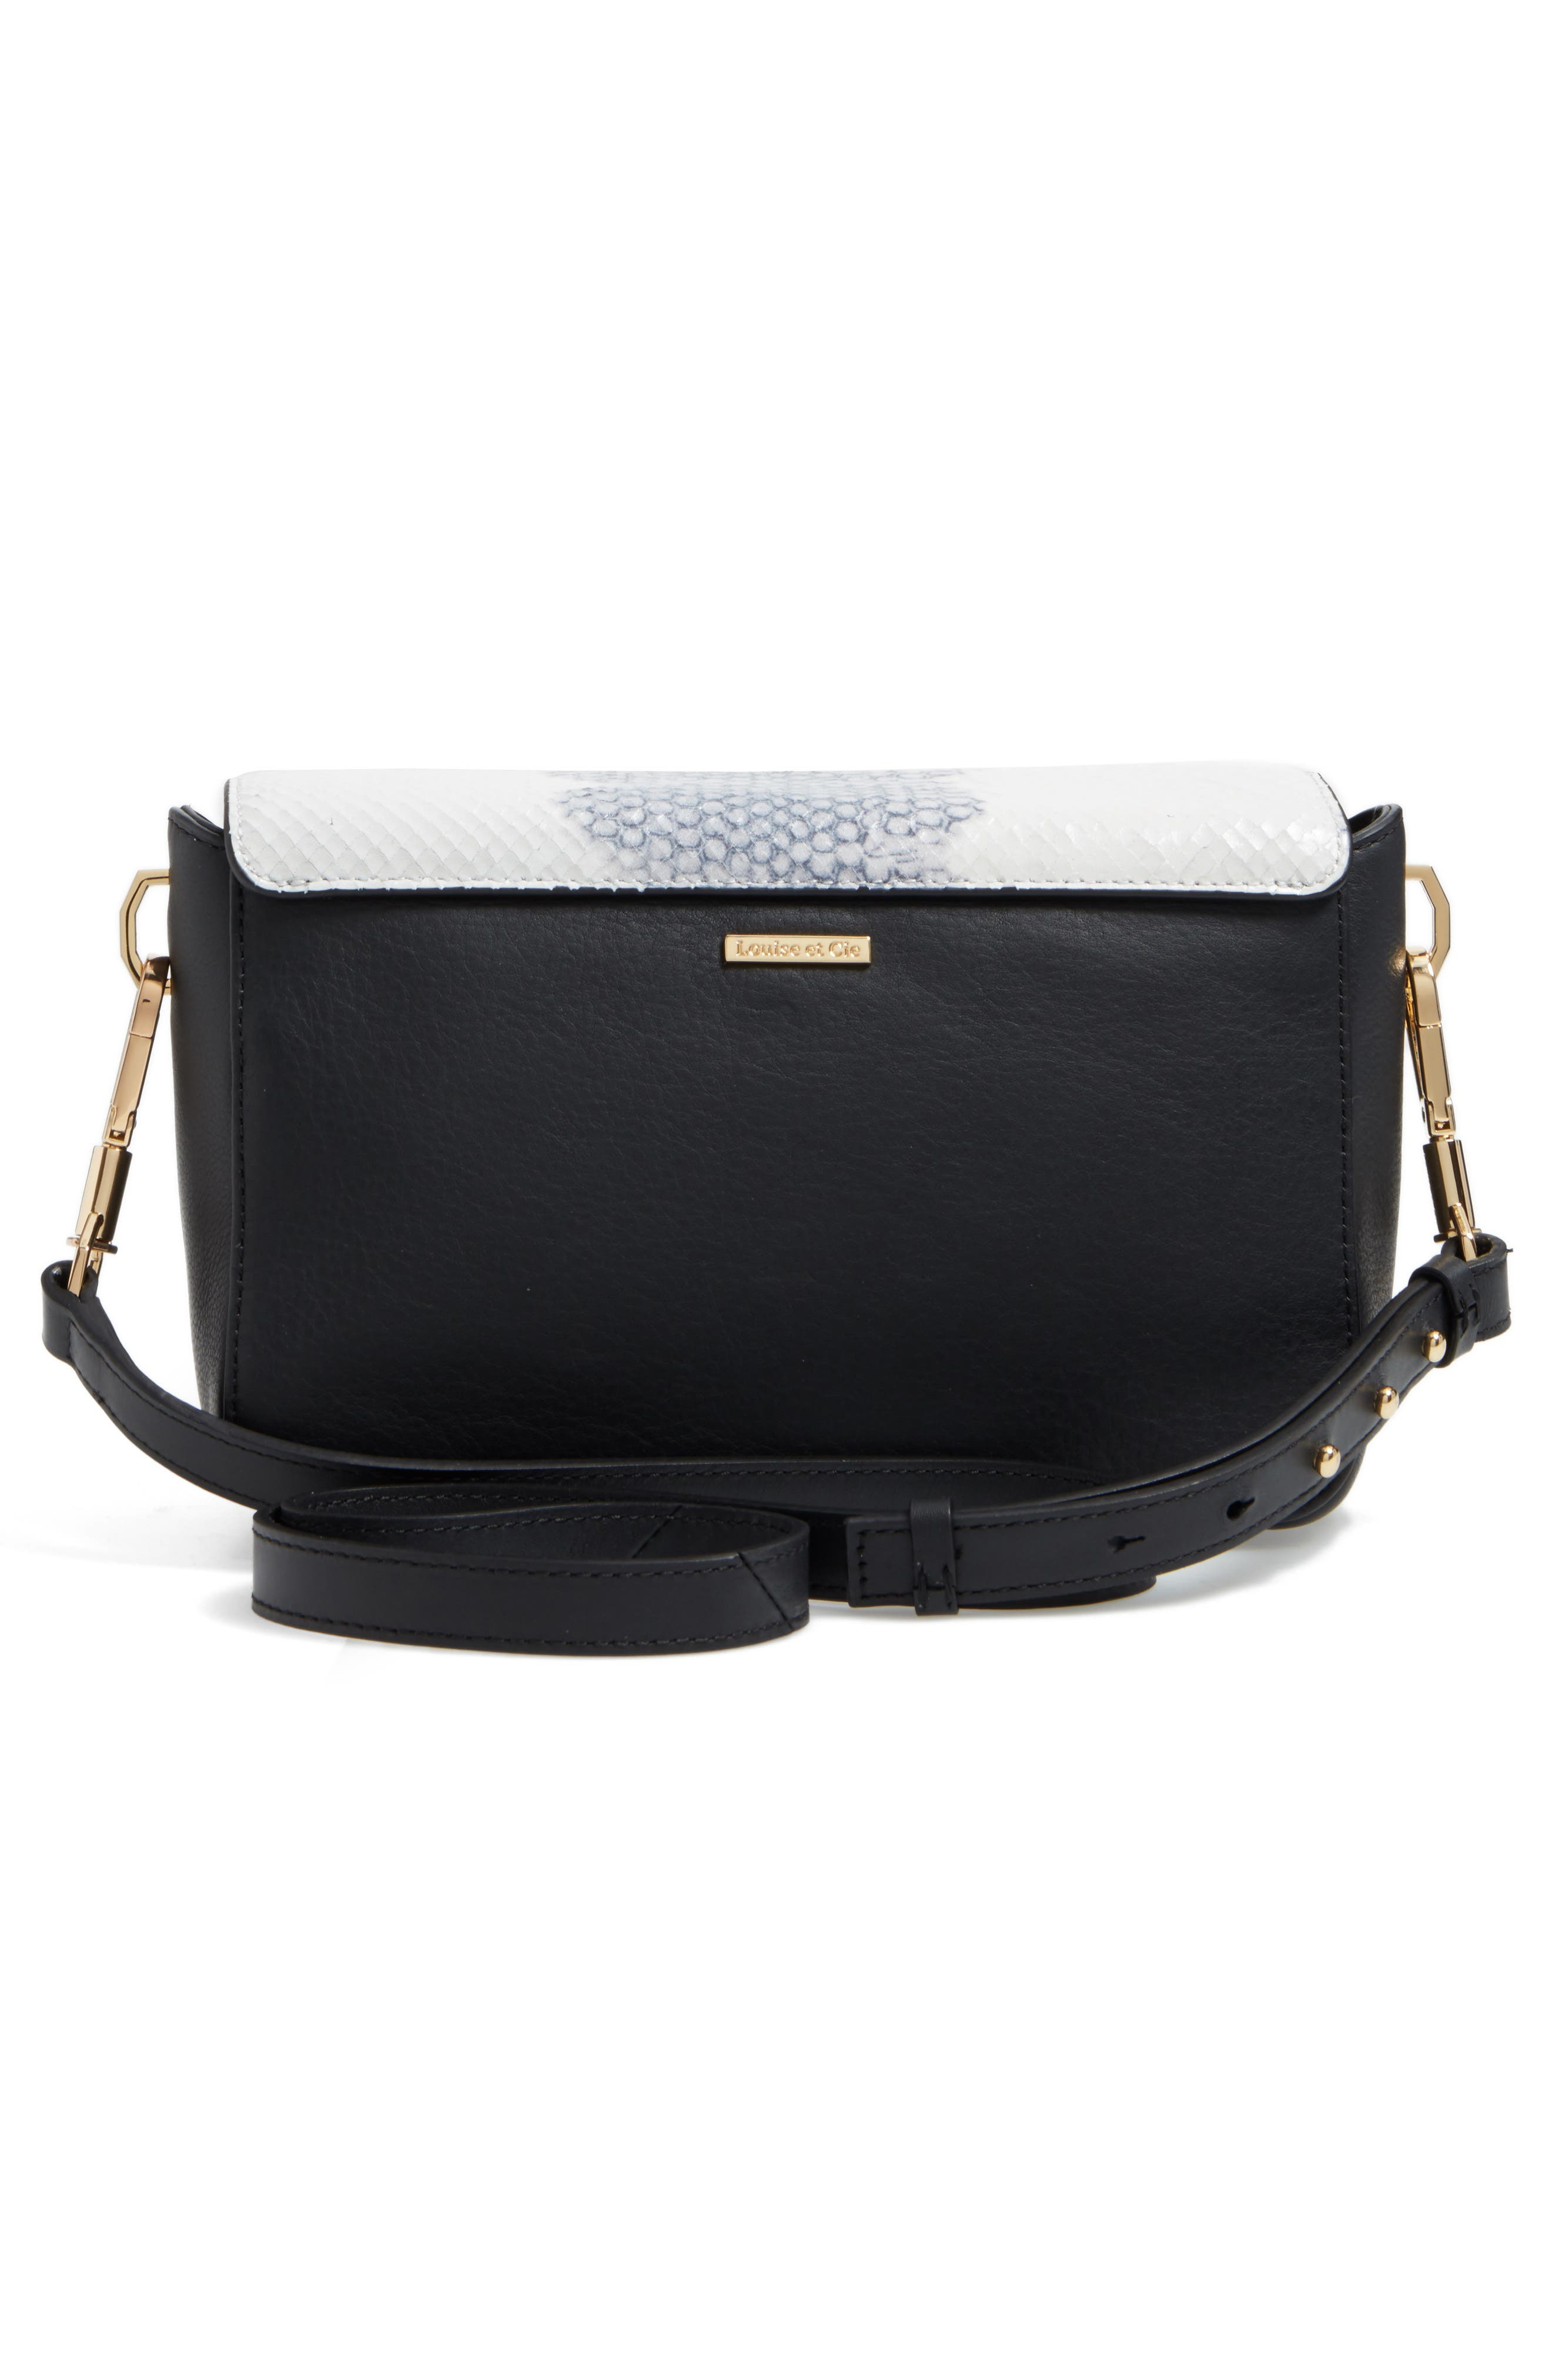 Alternate Image 3  - Louise et Cie 'Small Alis' Leather Crossbody Bag